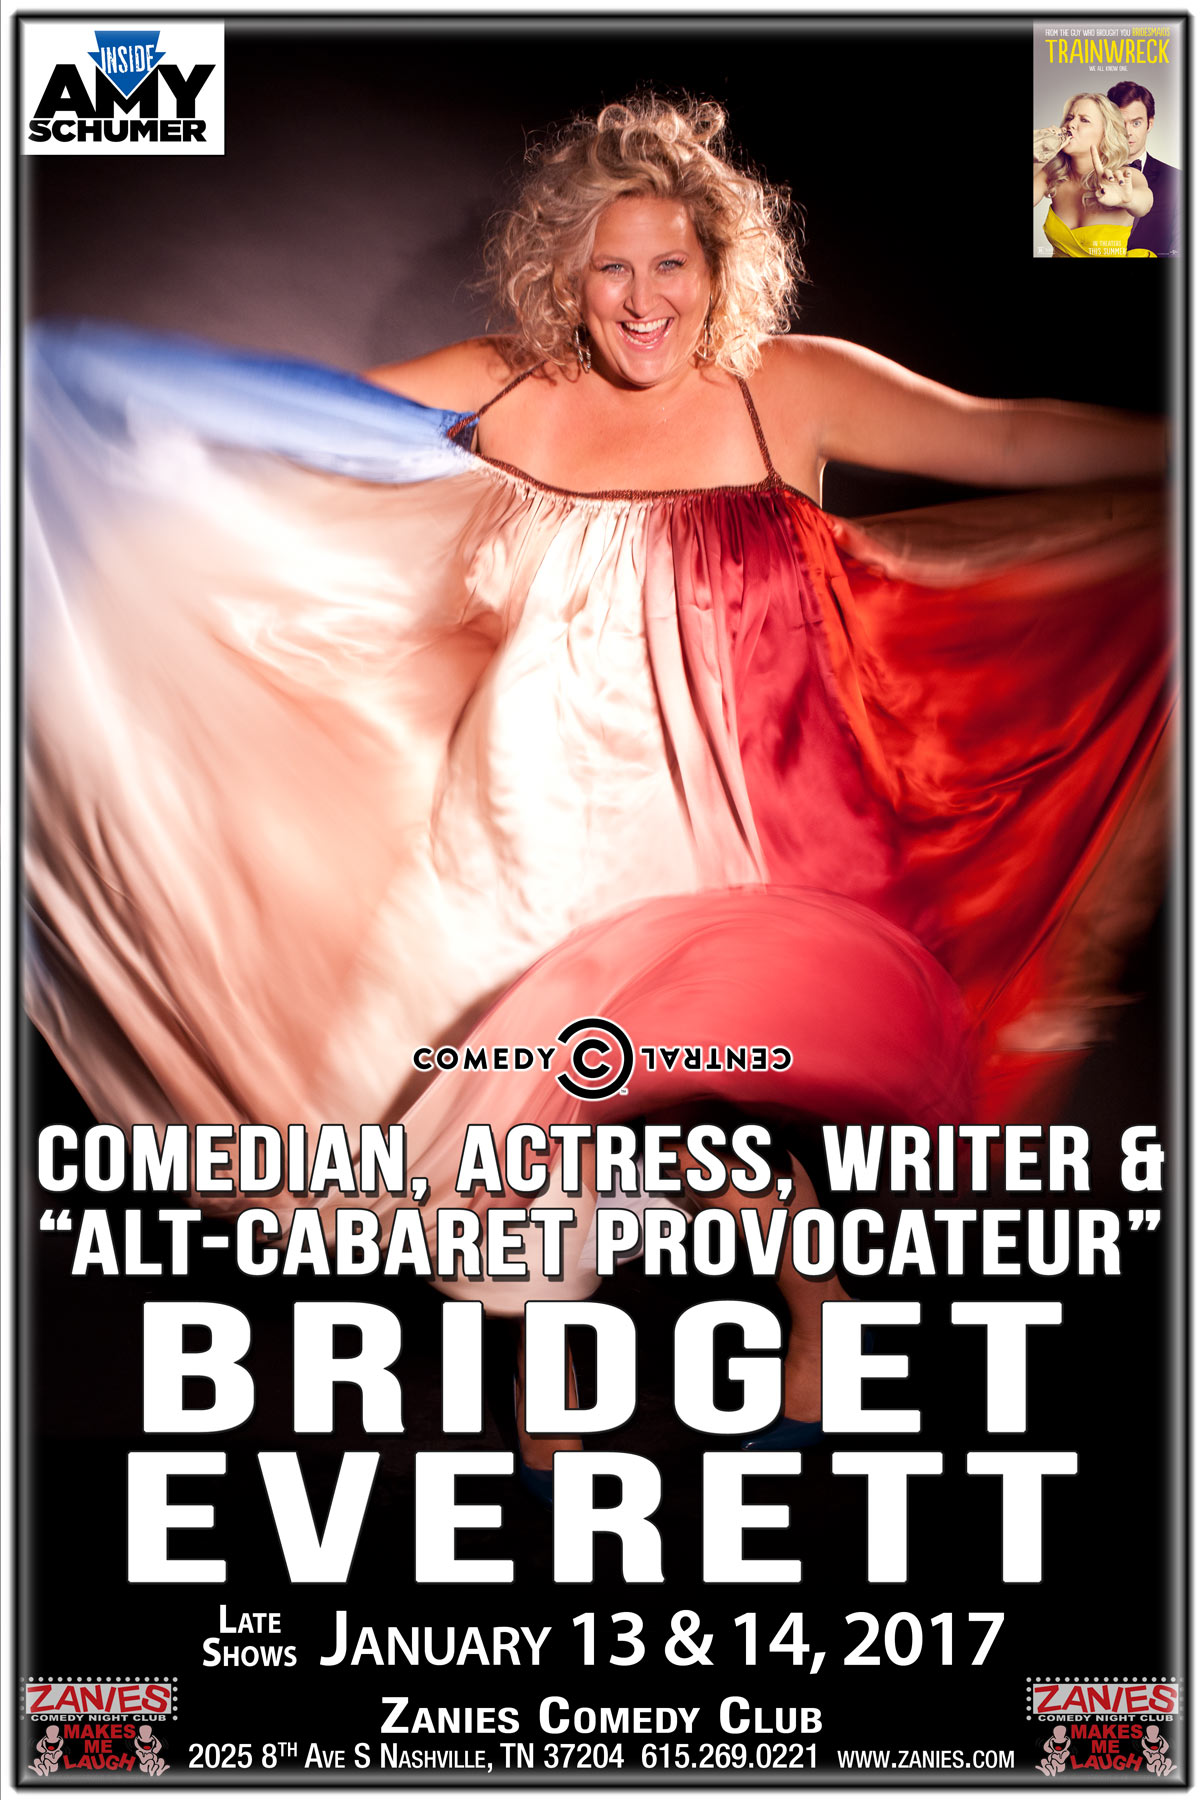 Bridget Everett Late Shows January 13 & 14, 2017 live at Zanies Comedy Club Nashville